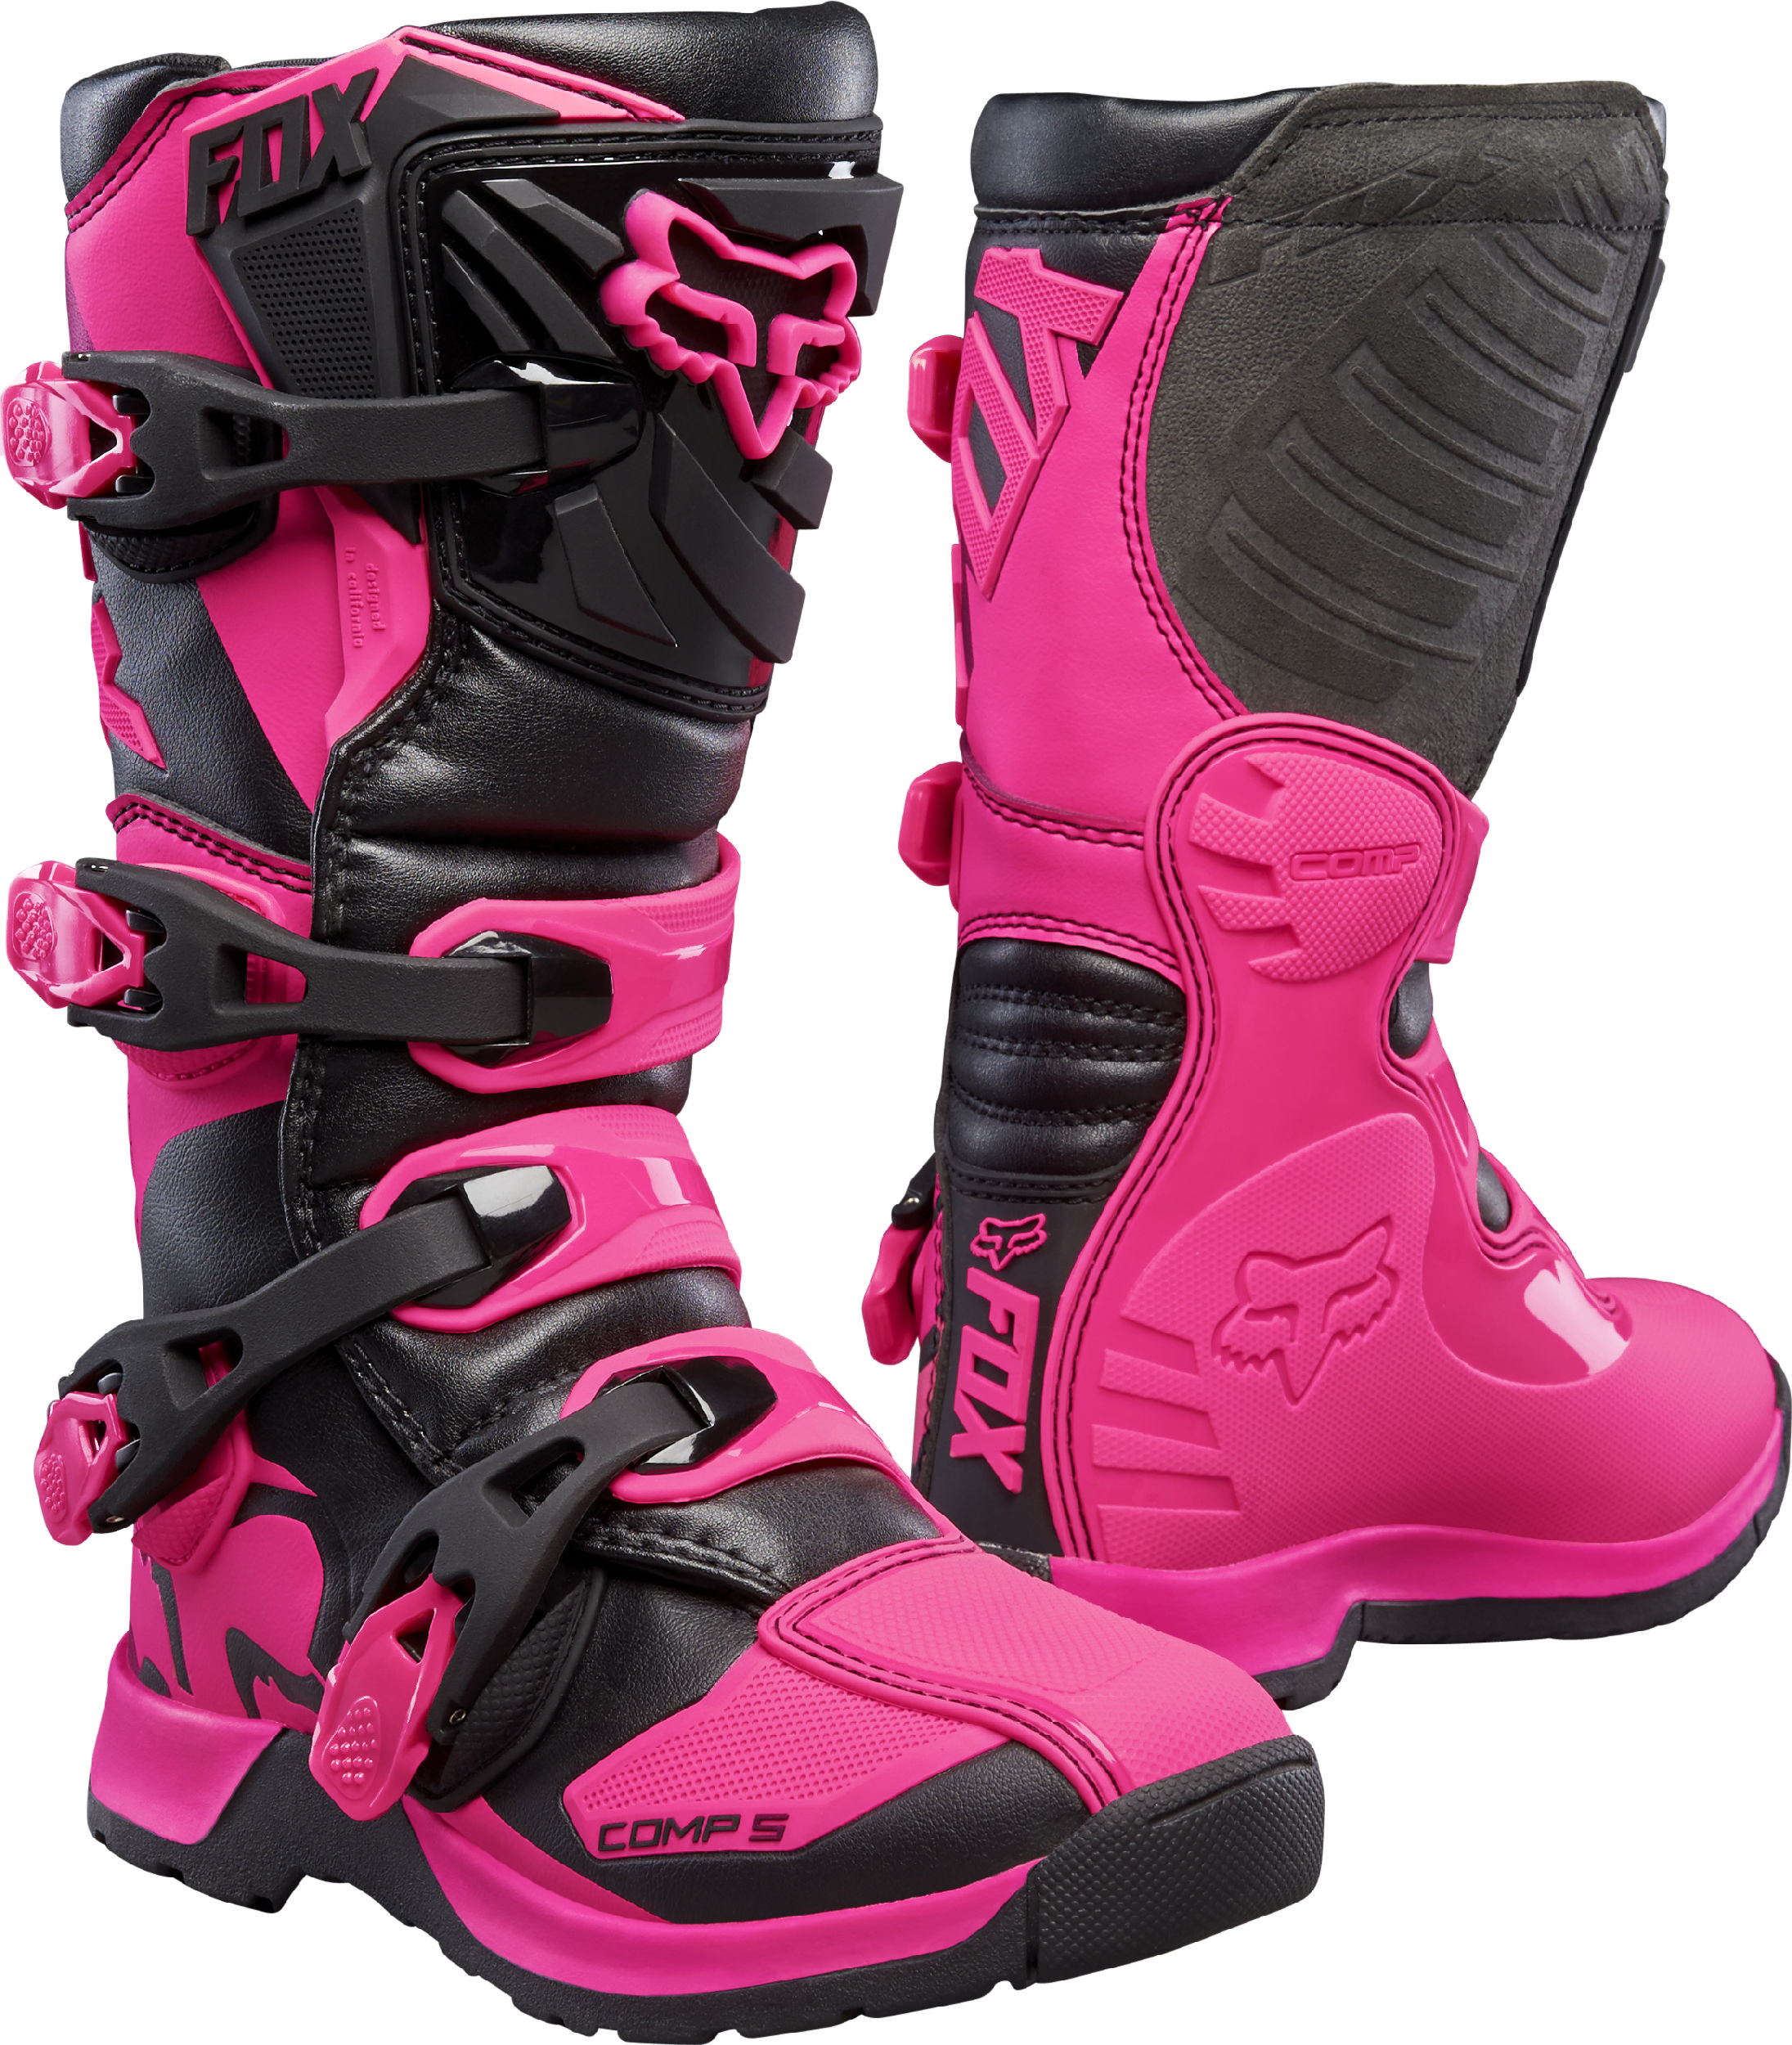 Youth Dirt Bike Boots >> Details About Fox Racing Youth Comp 5y Pink Black Dirt Bike Boots Motocross Atv Mx